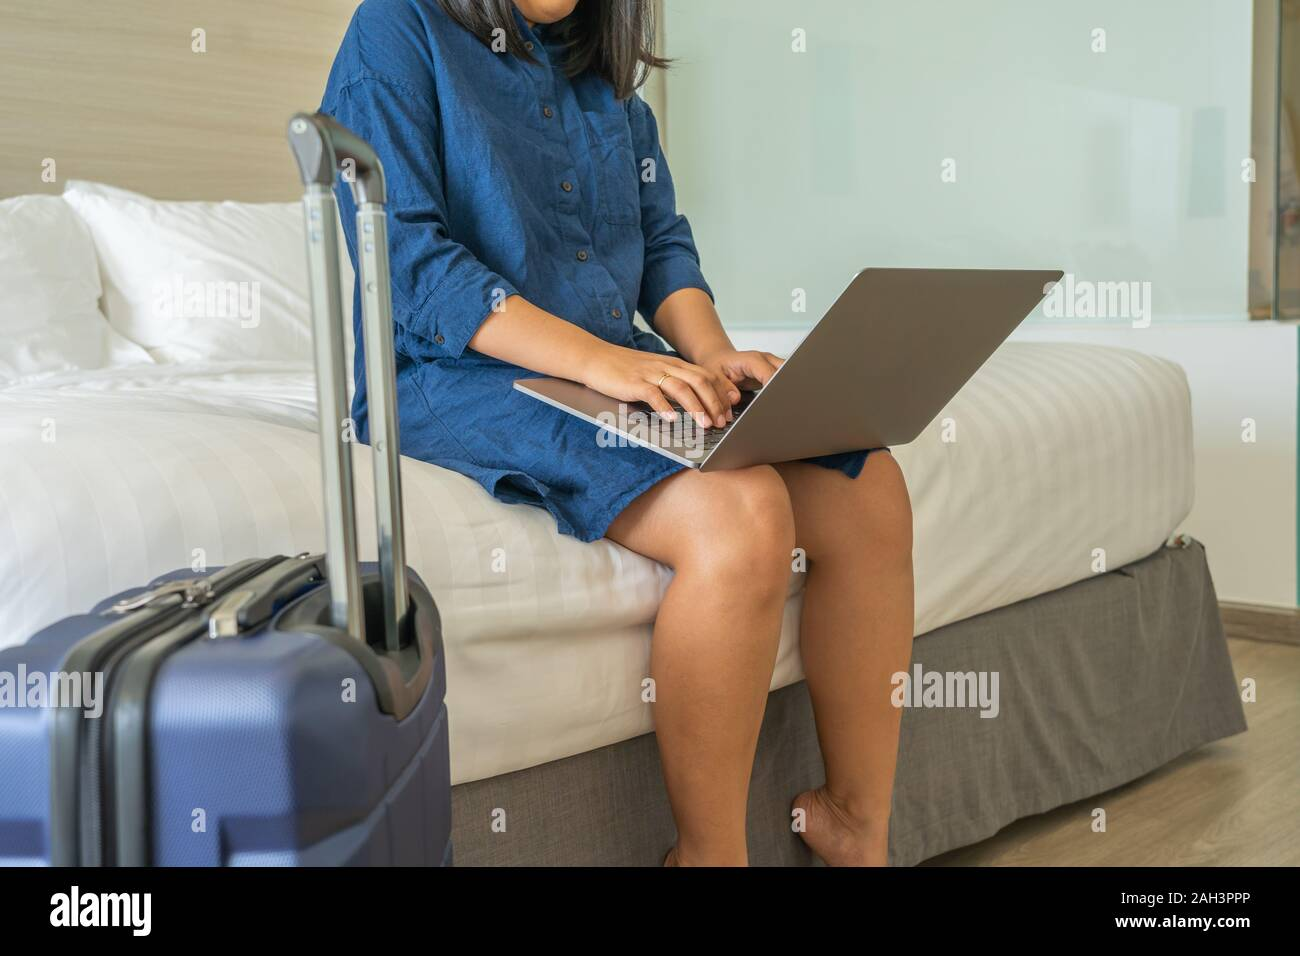 Woman sitting on bed using laptop next to carry-on suitcase Stock Photo